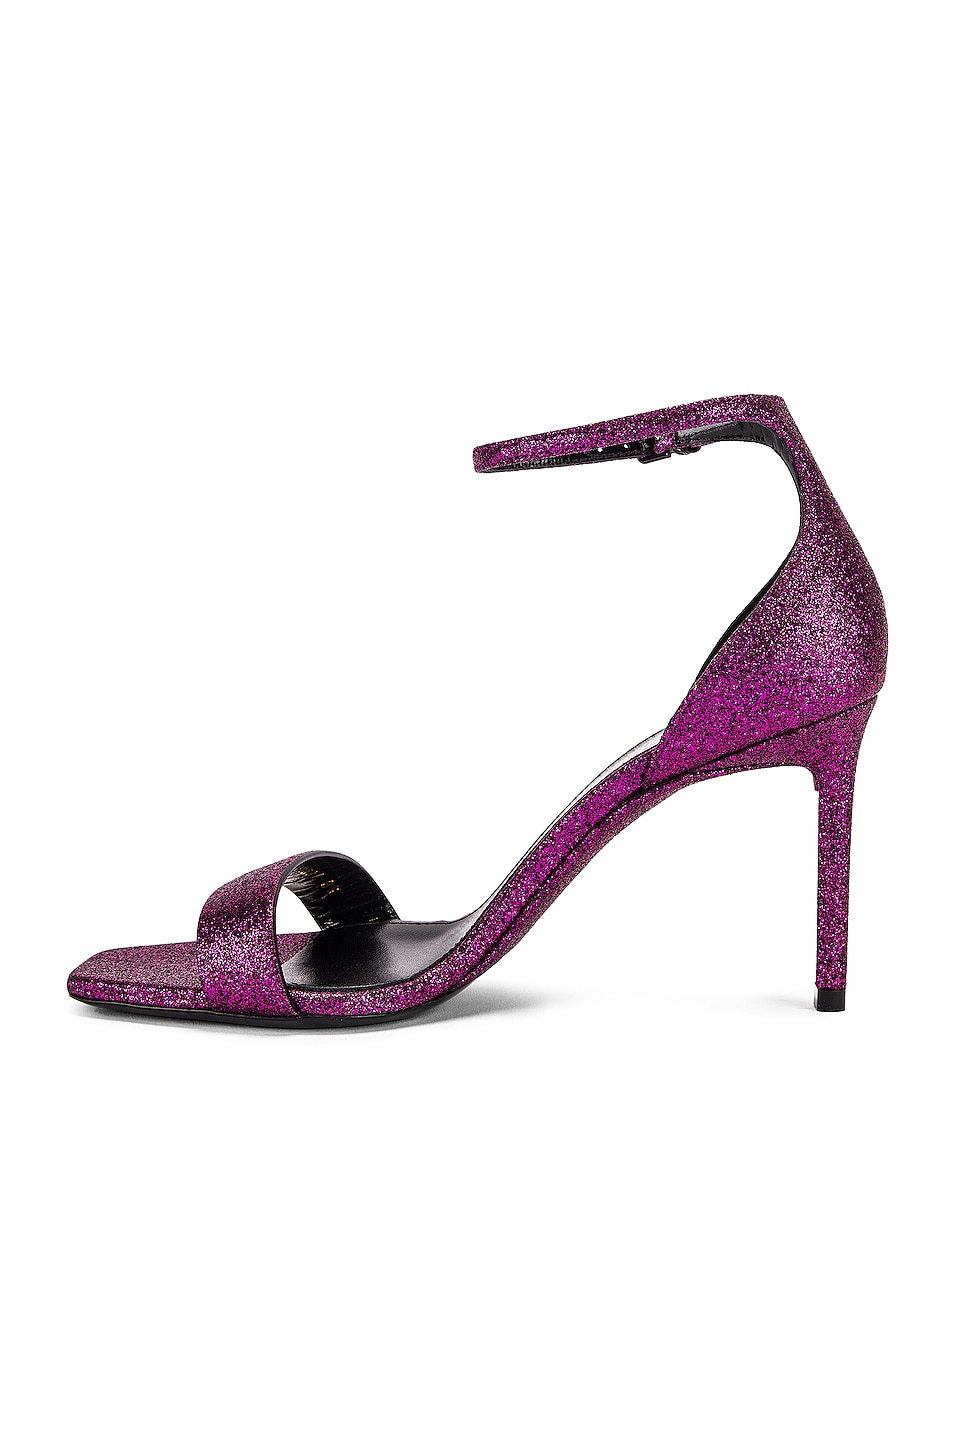 Image 5 of Saint Laurent Amber Ankle Strap Sandals in Fuchsia